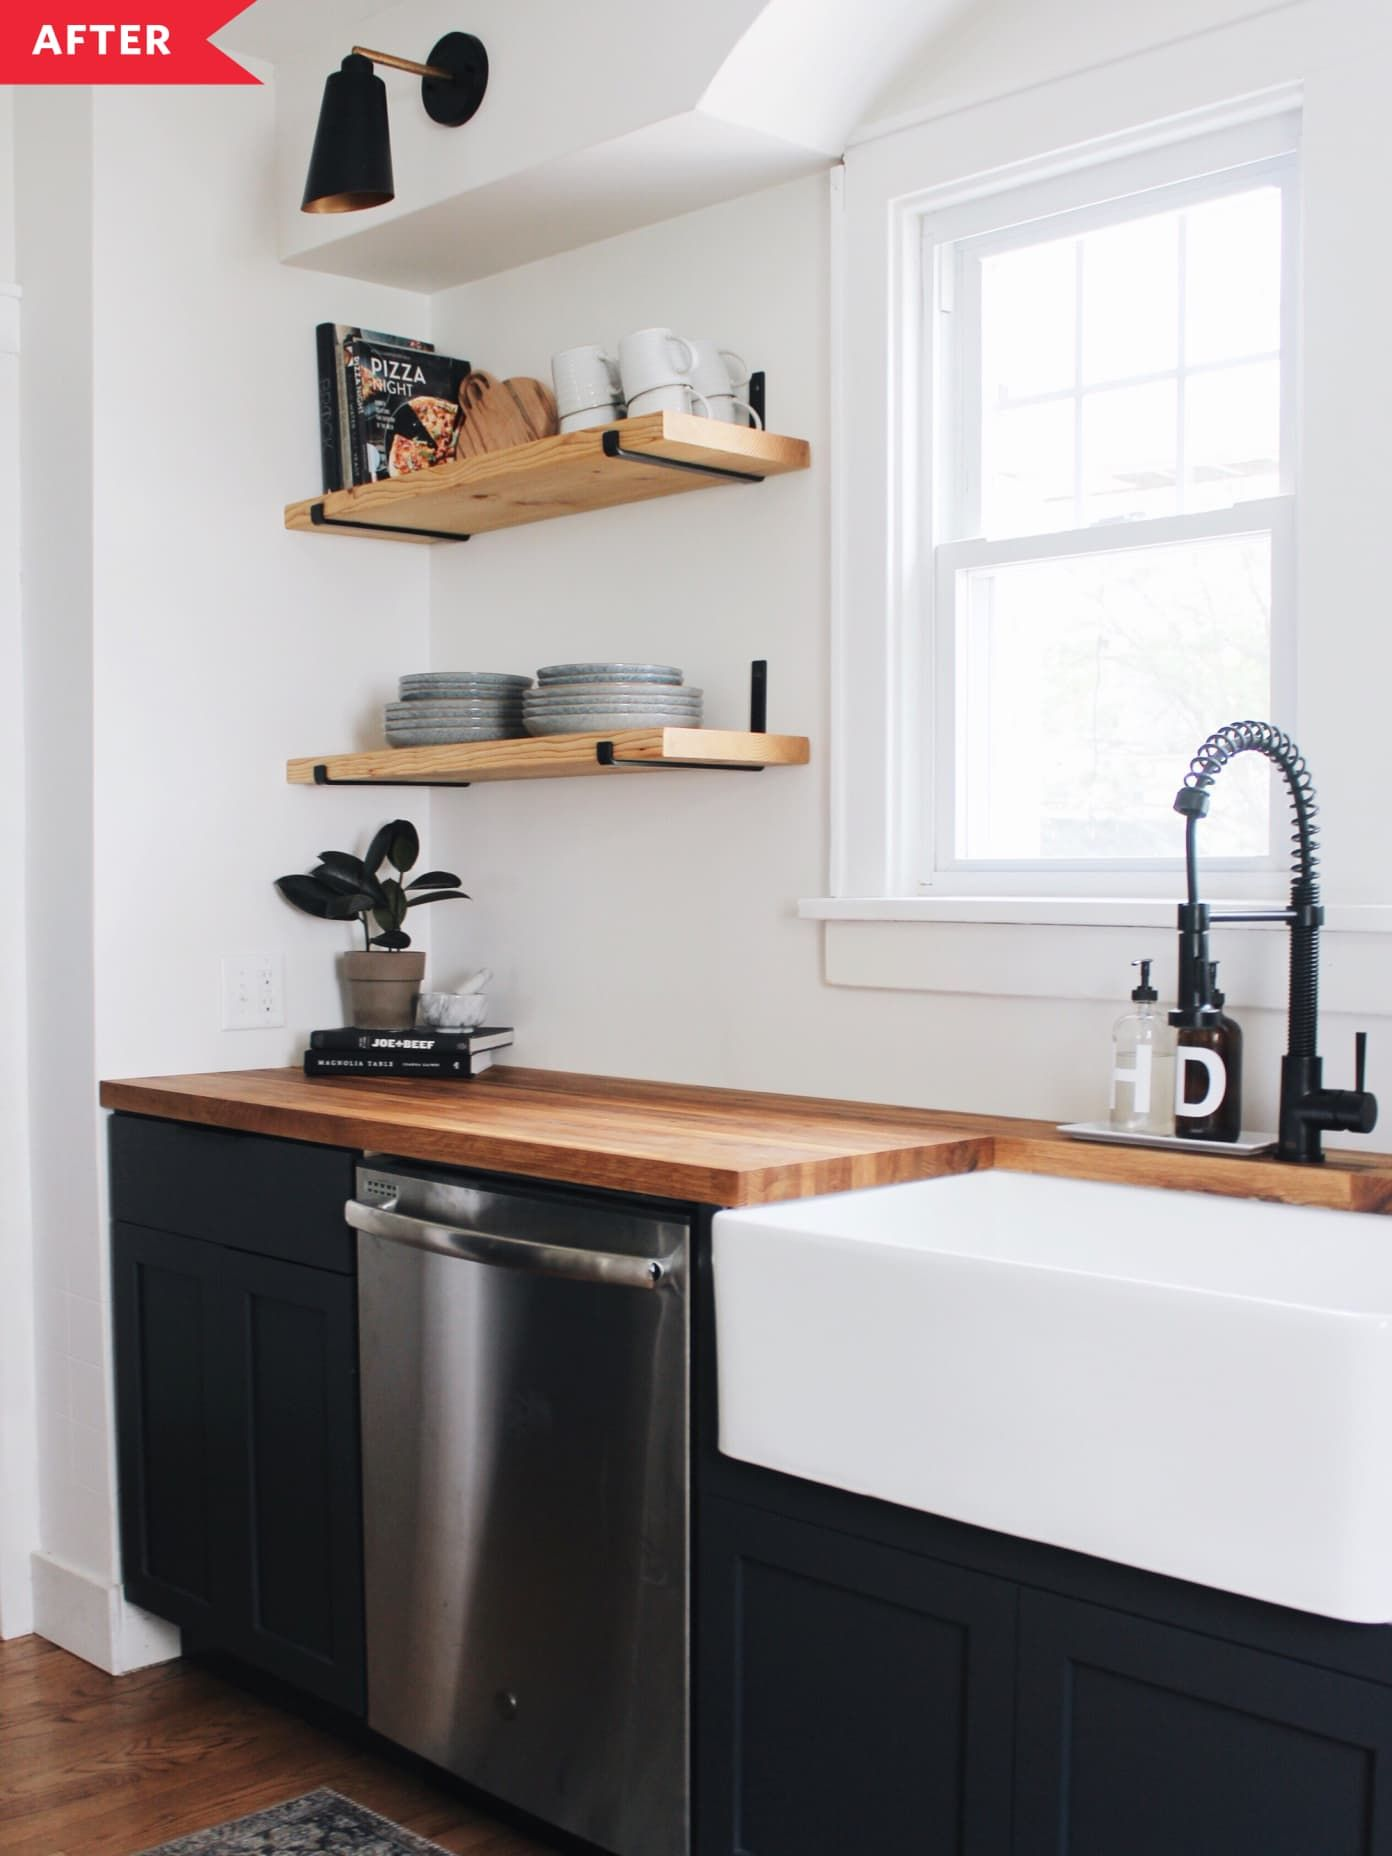 21 Dramatic Black Kitchen Cabinets Ideas For Any Home S Style In 2020 Black Kitchens Black Kitchen Cabinets Beige Cabinets